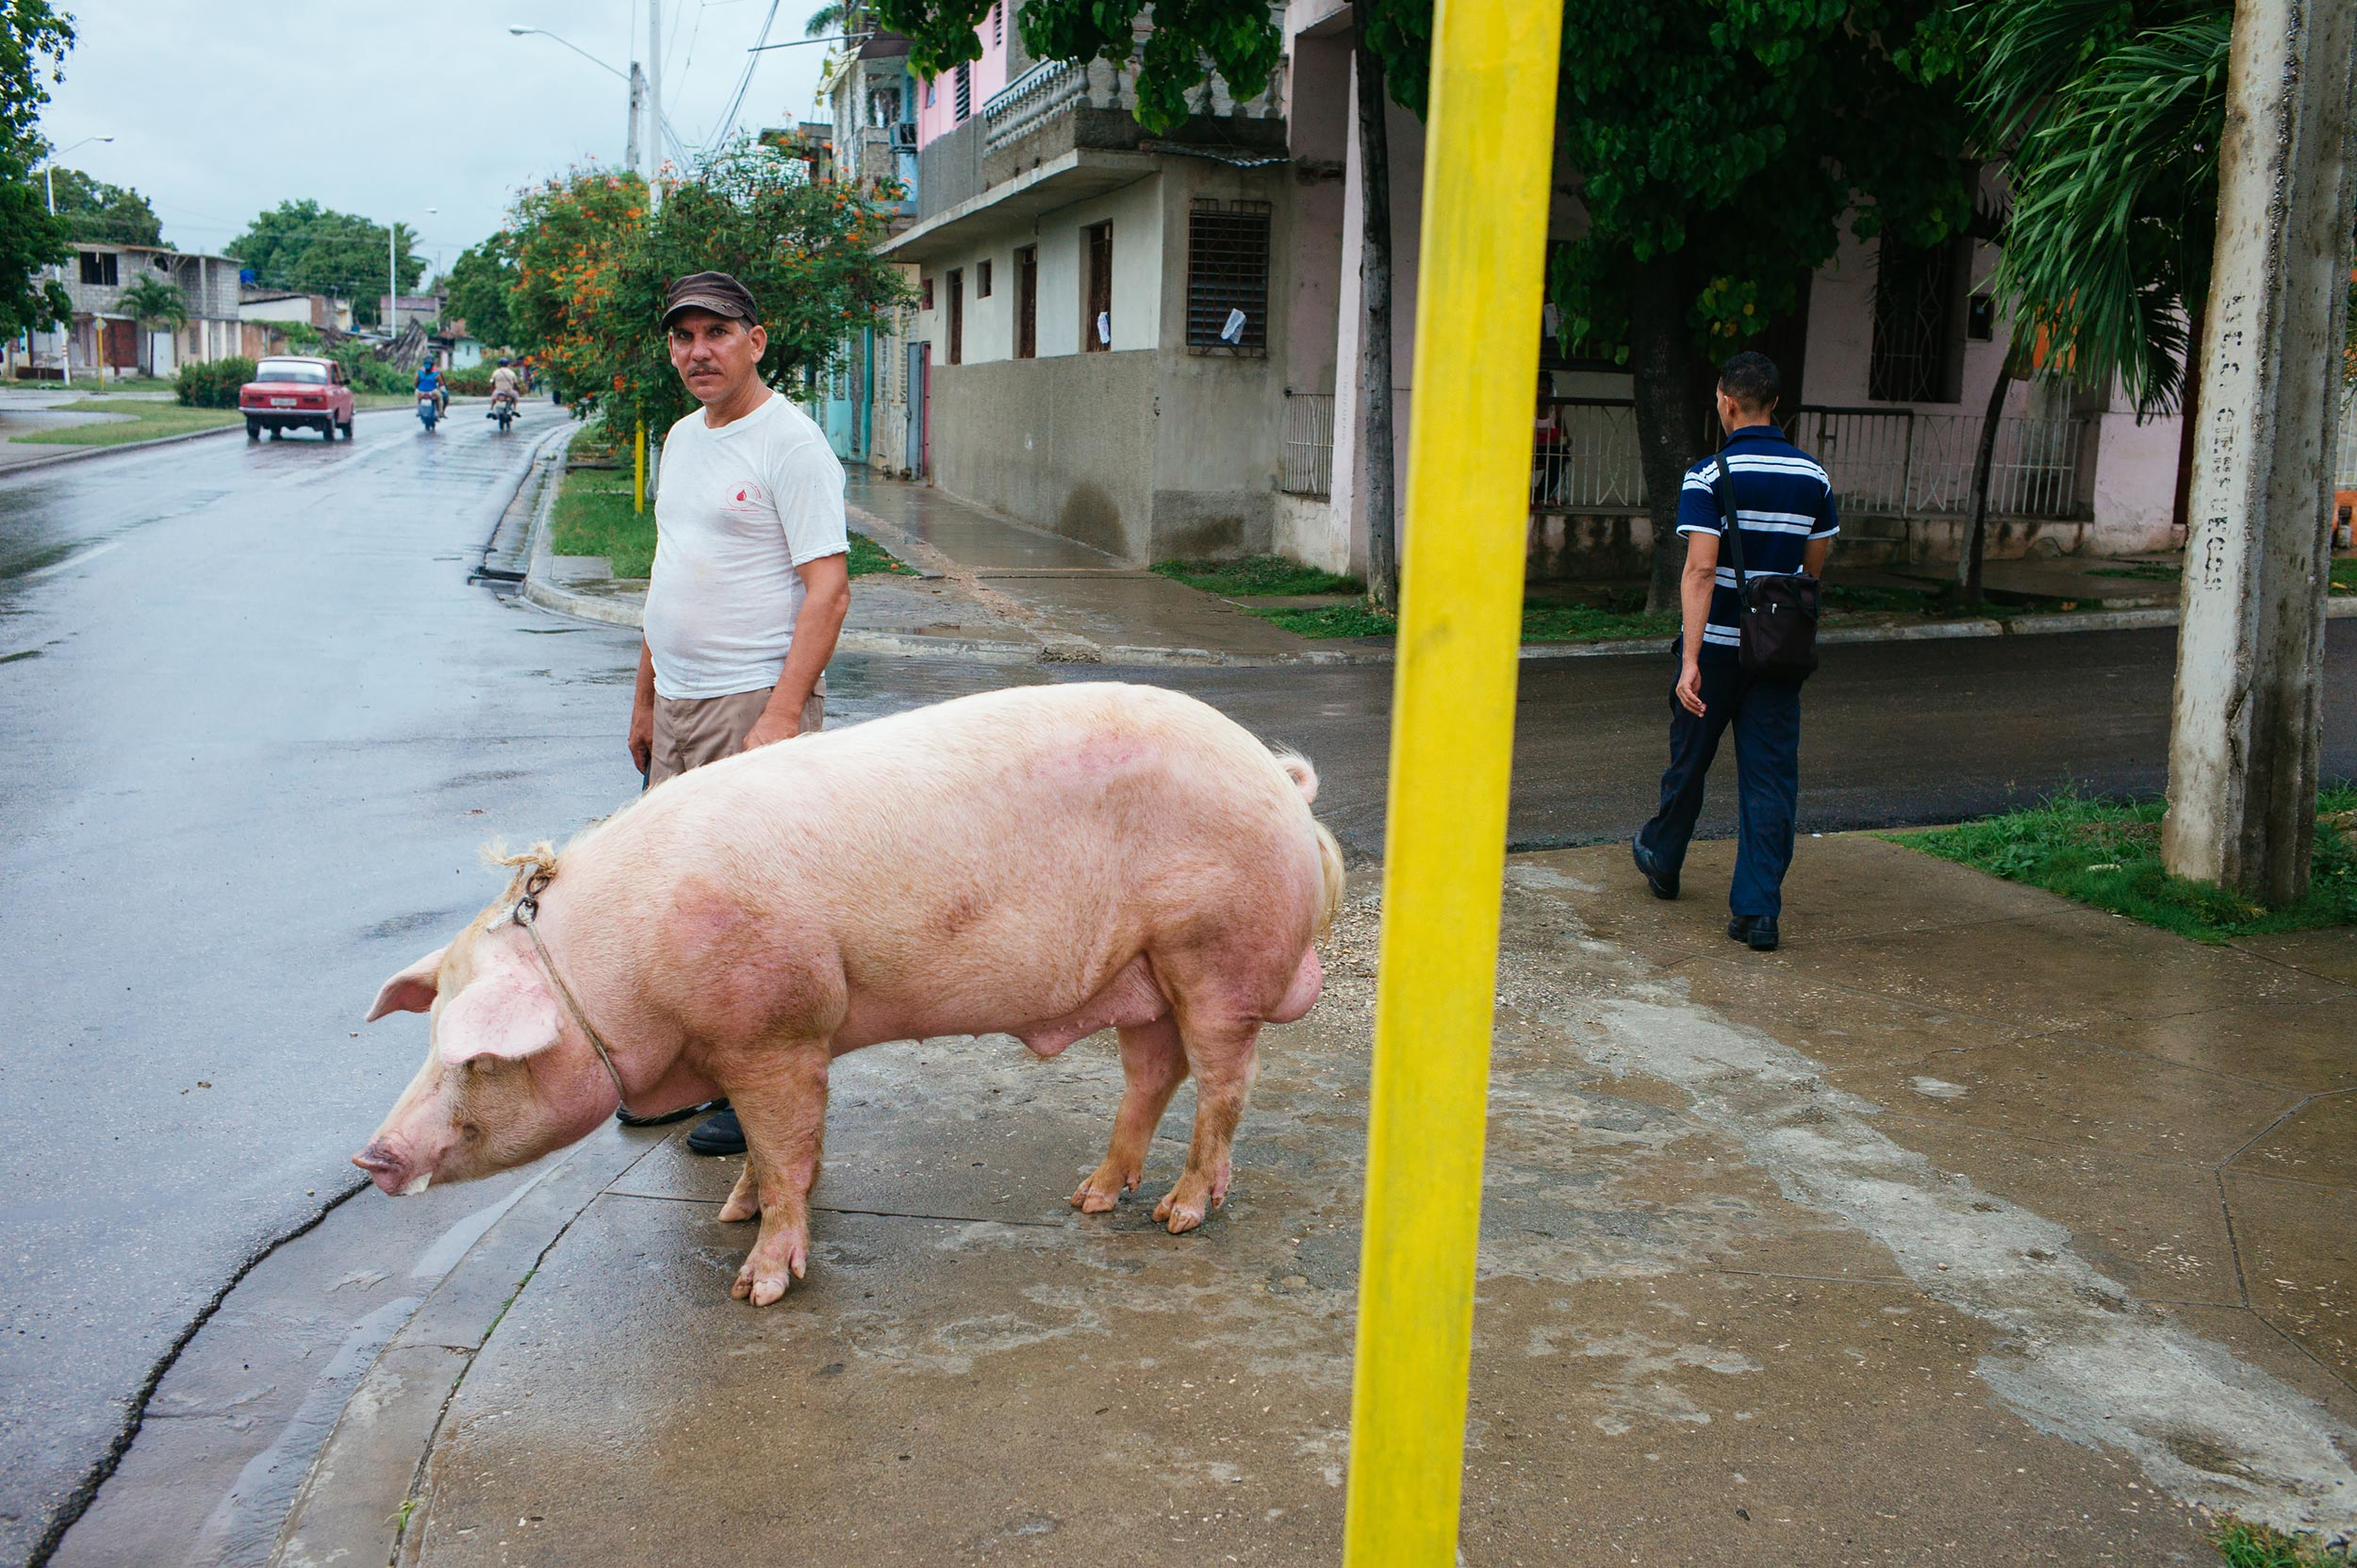 Guantanamo-2016-man-walking-with-a-big-pig-street-photography-by-Alessandro-Avenali.jpg